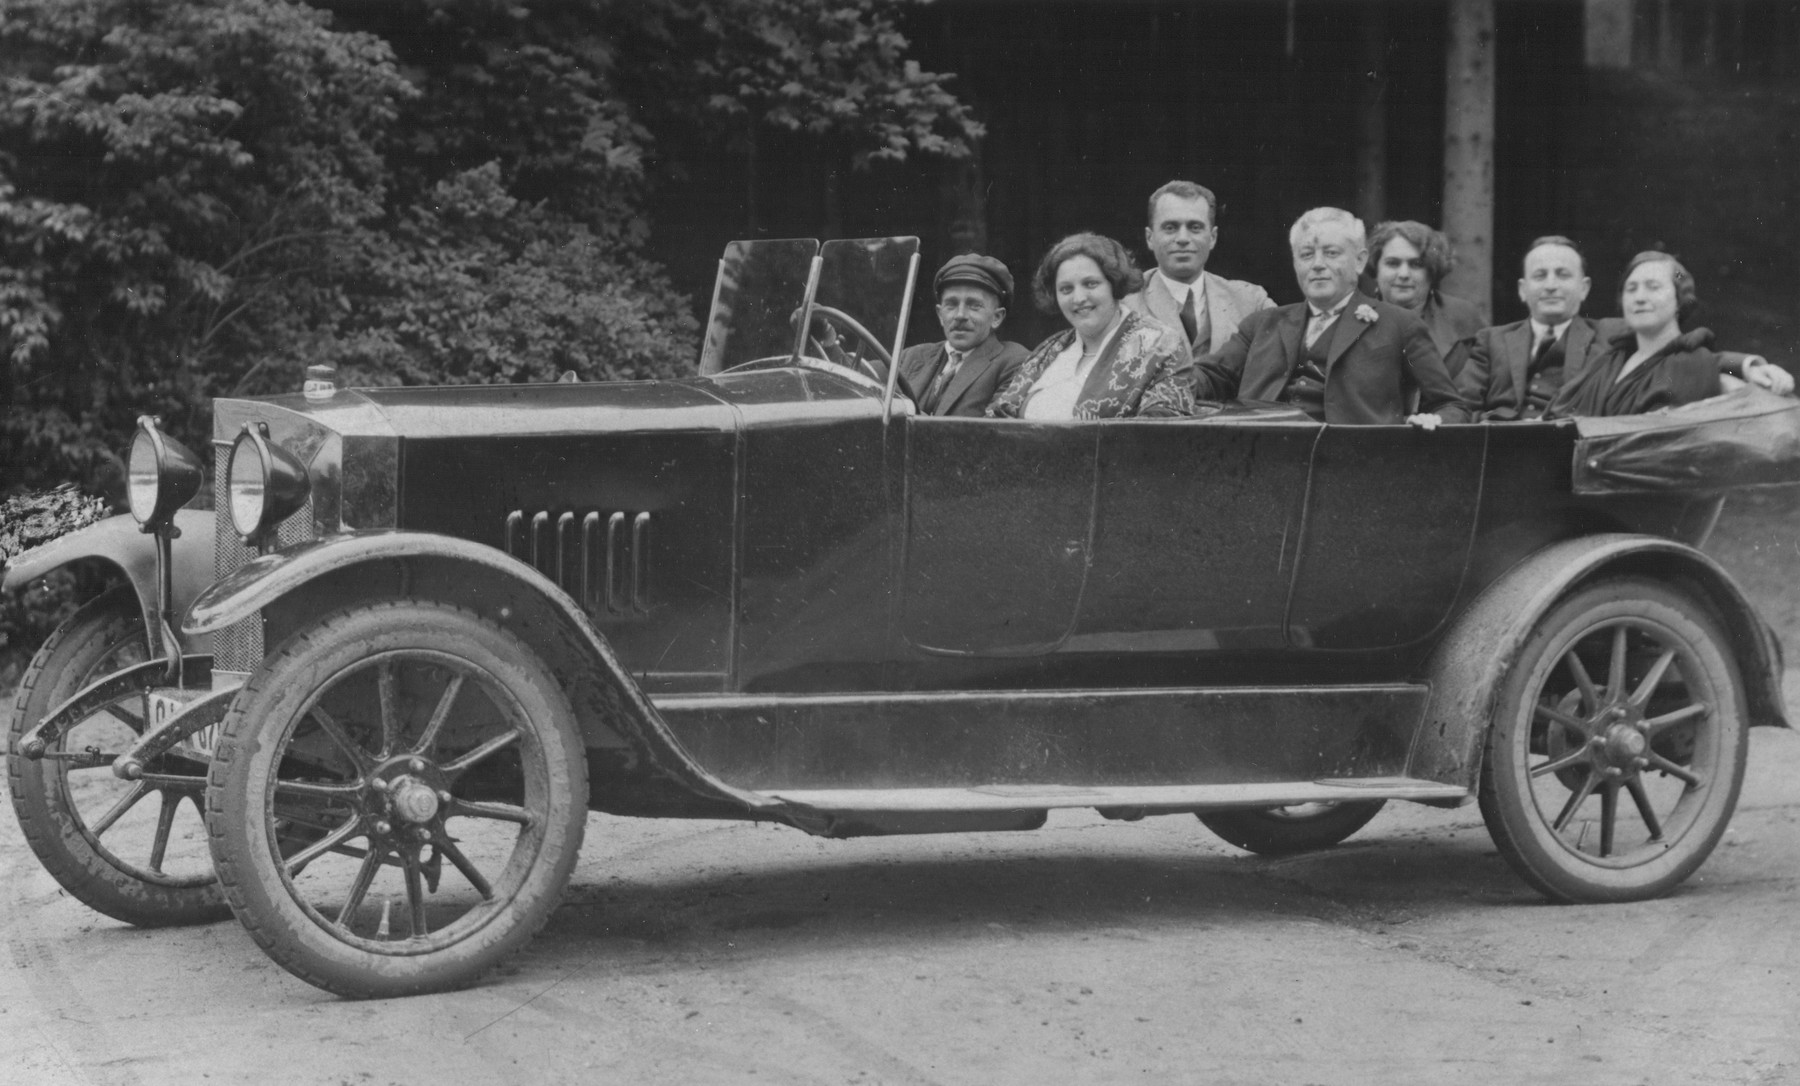 Hungarian Jews on vacation drive in an open automobile while vacationing in Marienbad.  Marci (Marton) Vecsey (uncle of the donor) is pictured in the center.